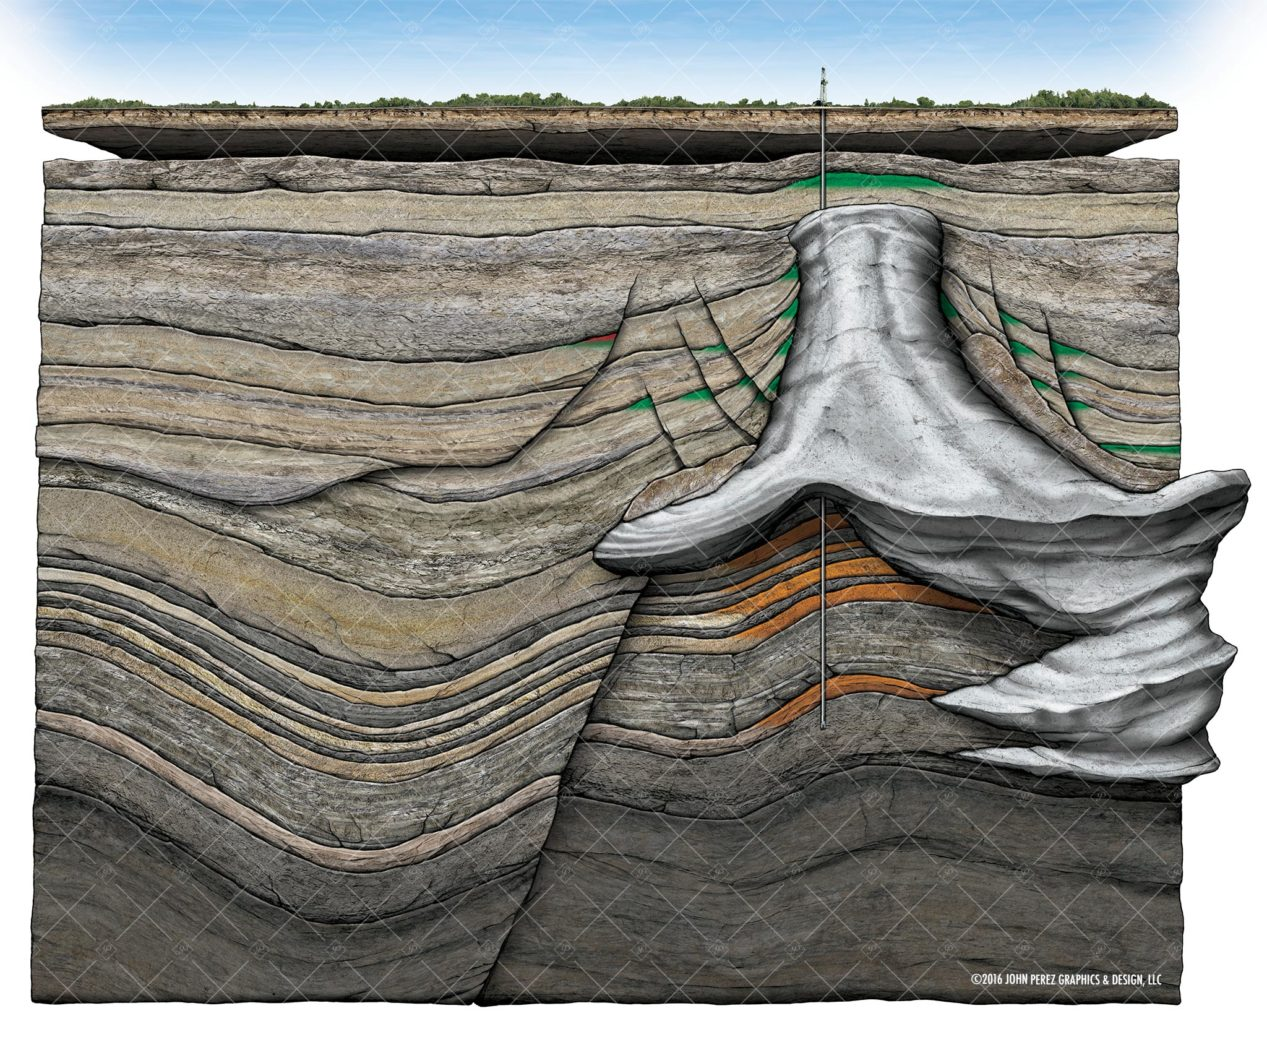 Salt Dome Multi Zone Schematic, Fault Traps, salt dome, John perez graphics, oil and gas graphics, oil and gas schematics, john perez graphics, geology illustration